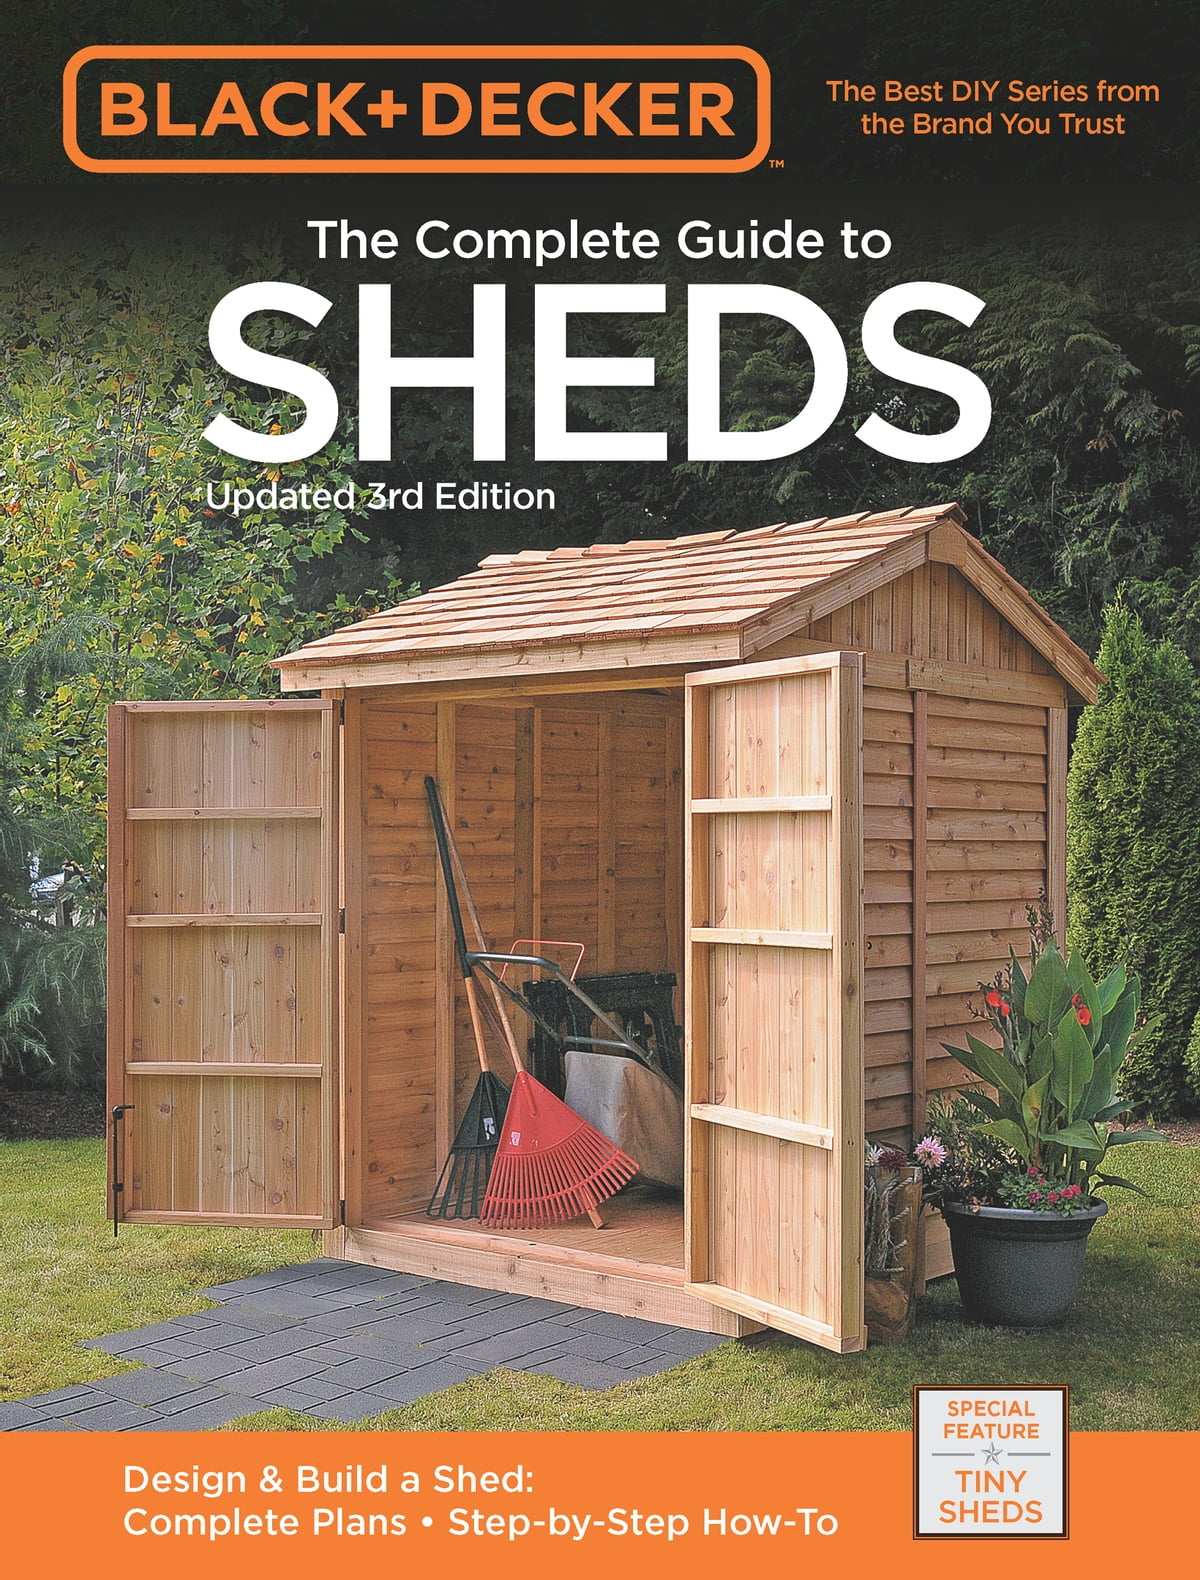 Black & Decker The Complete Guide to Sheds 3rd Edition eBook by Editors of  CPi - 9780760354780 | Rakuten Kobo